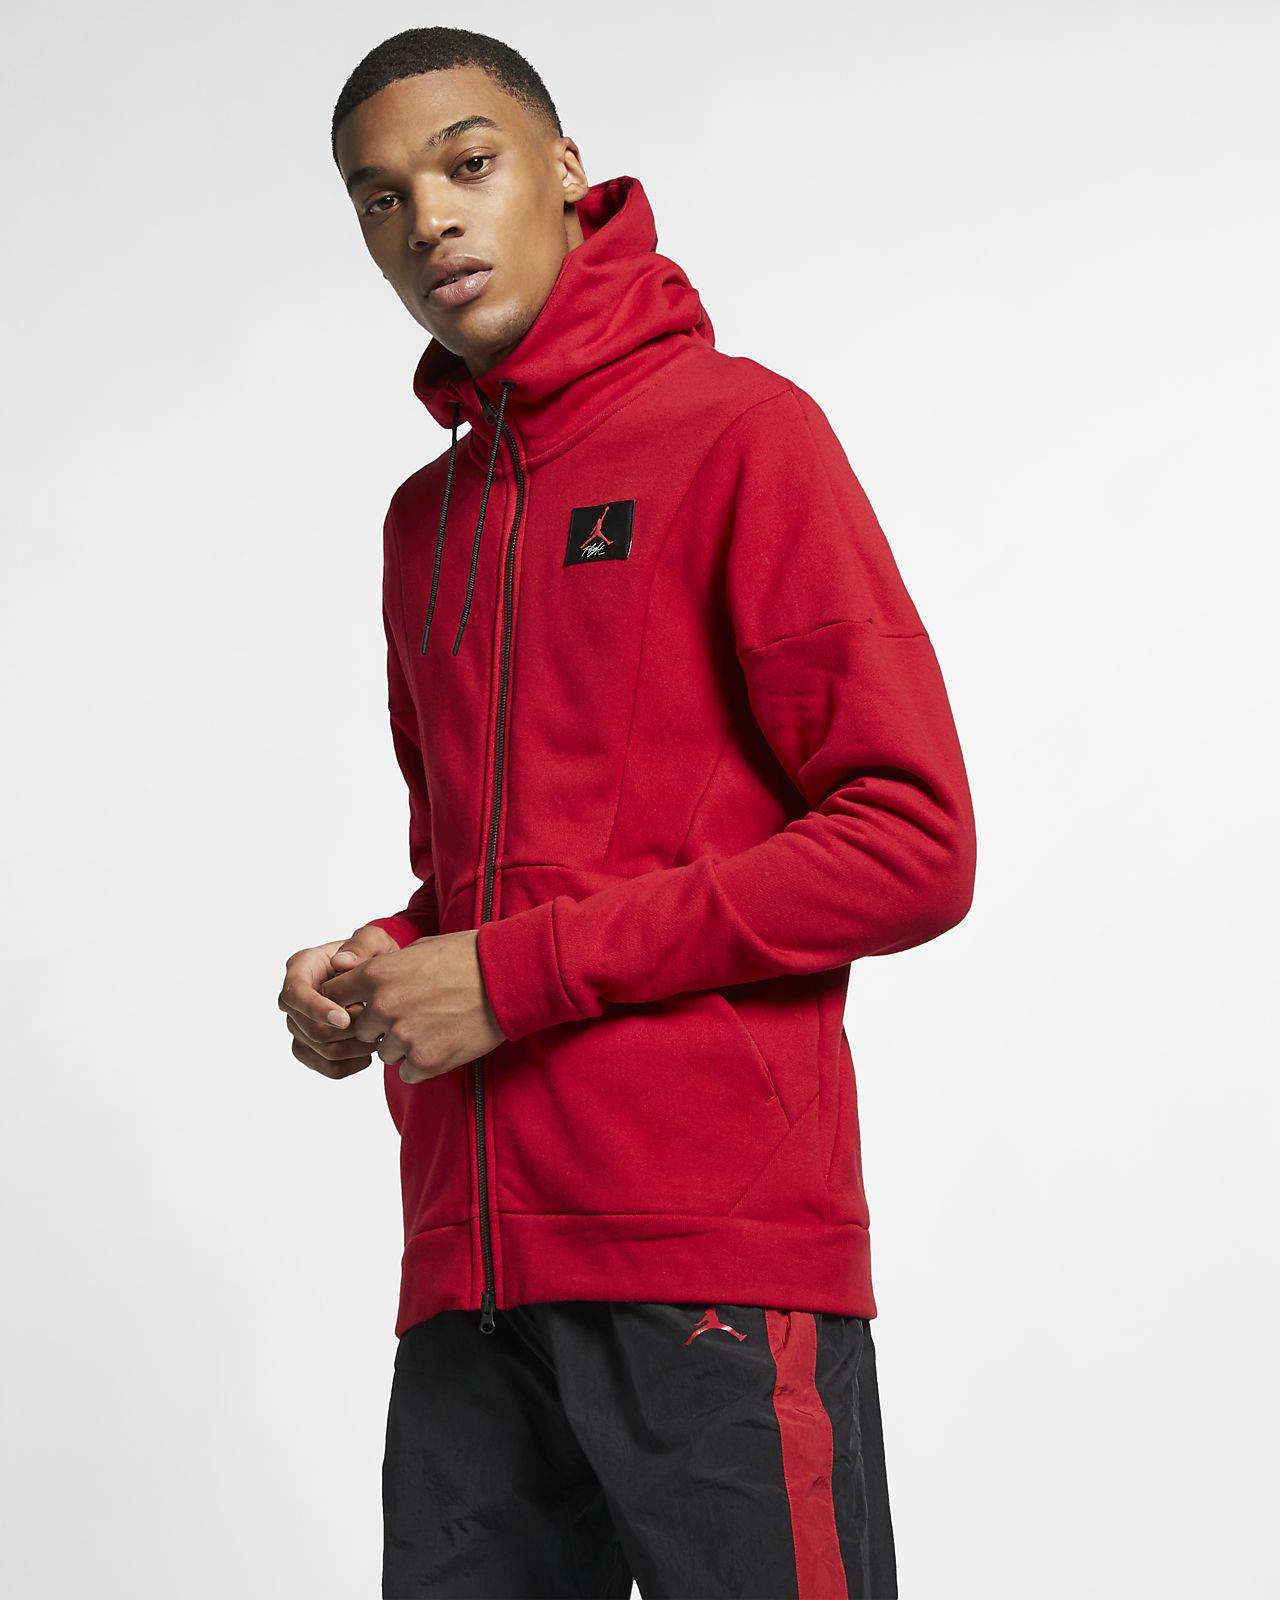 cd1a5882e1c59d Jordan Flight Loop Men s Full-Zip Hoodie. Nike.com